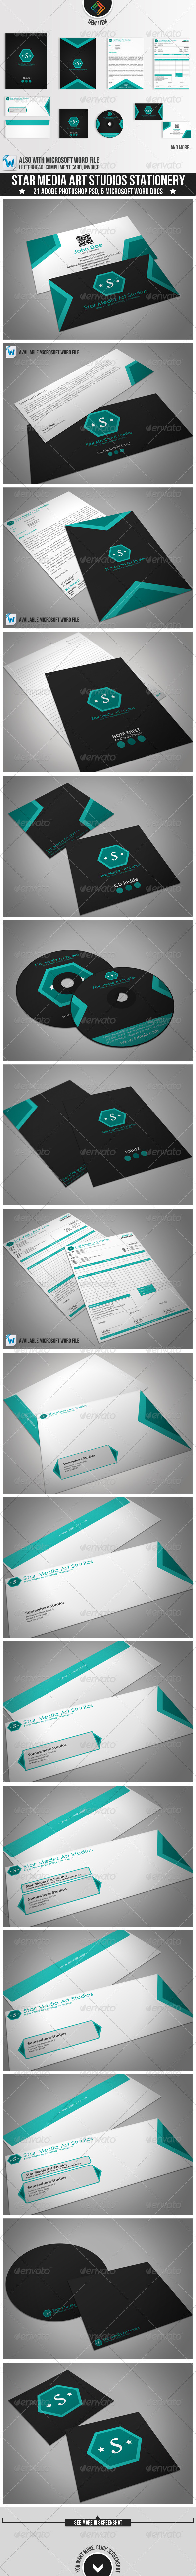 Star Media Art Studios Stationery - Stationery Print Templates